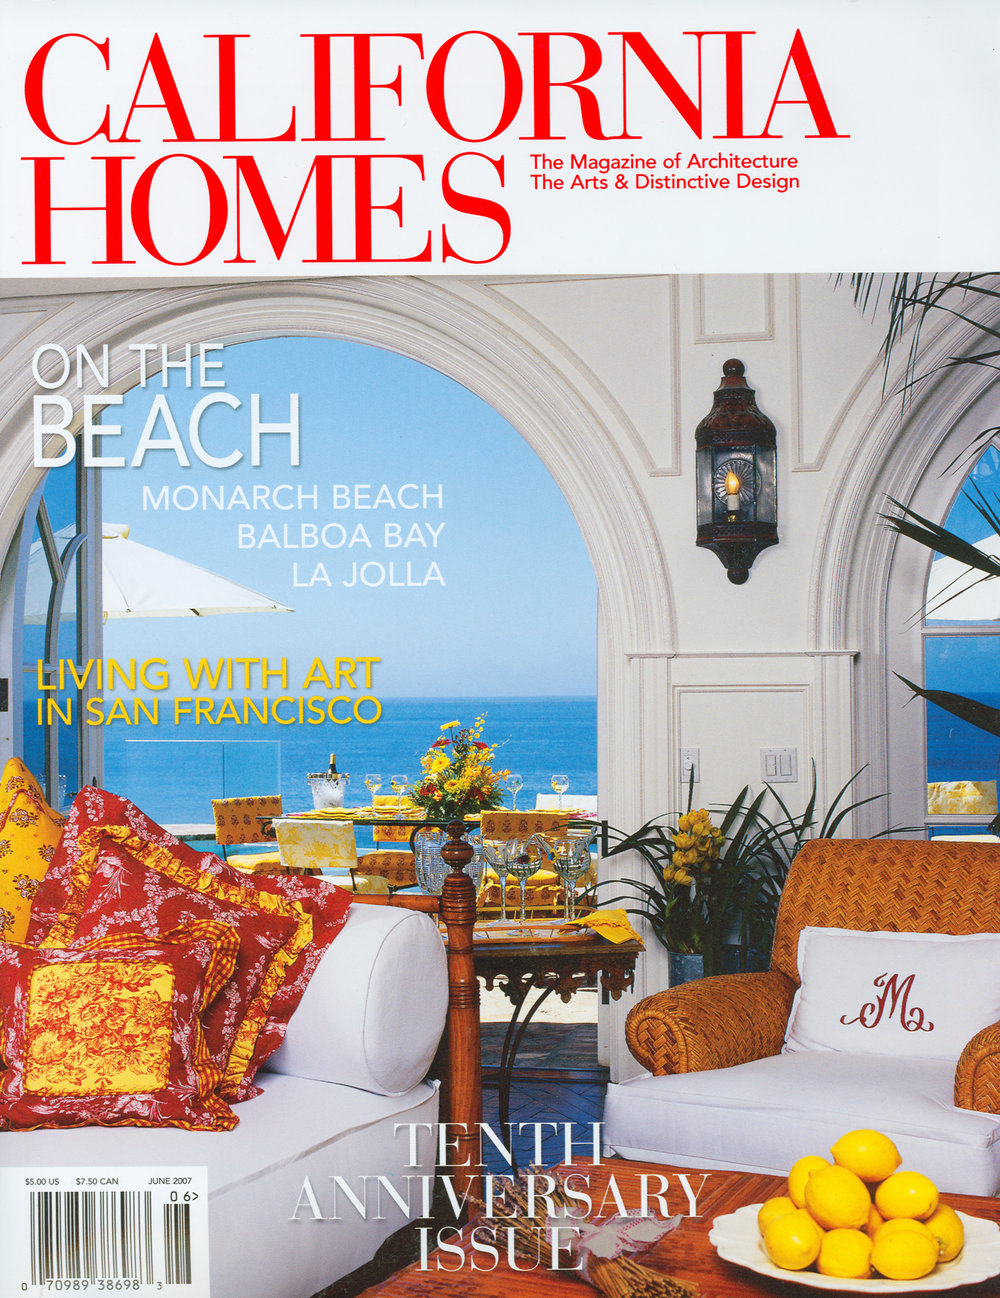 CALIFORNIA HOMES - MONTECITO